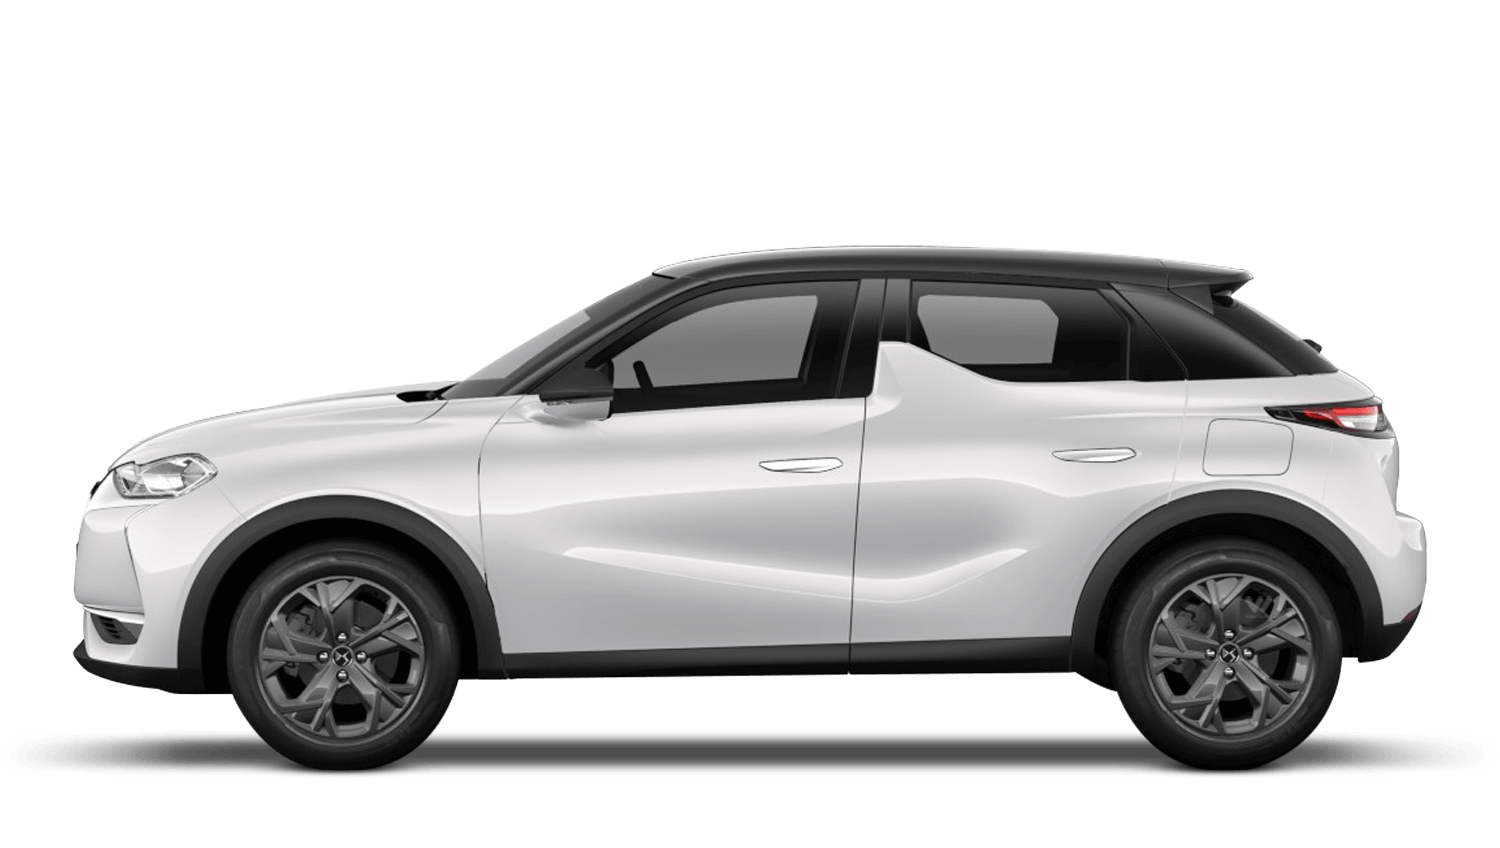 Pearl White DS DS 3 Crossback